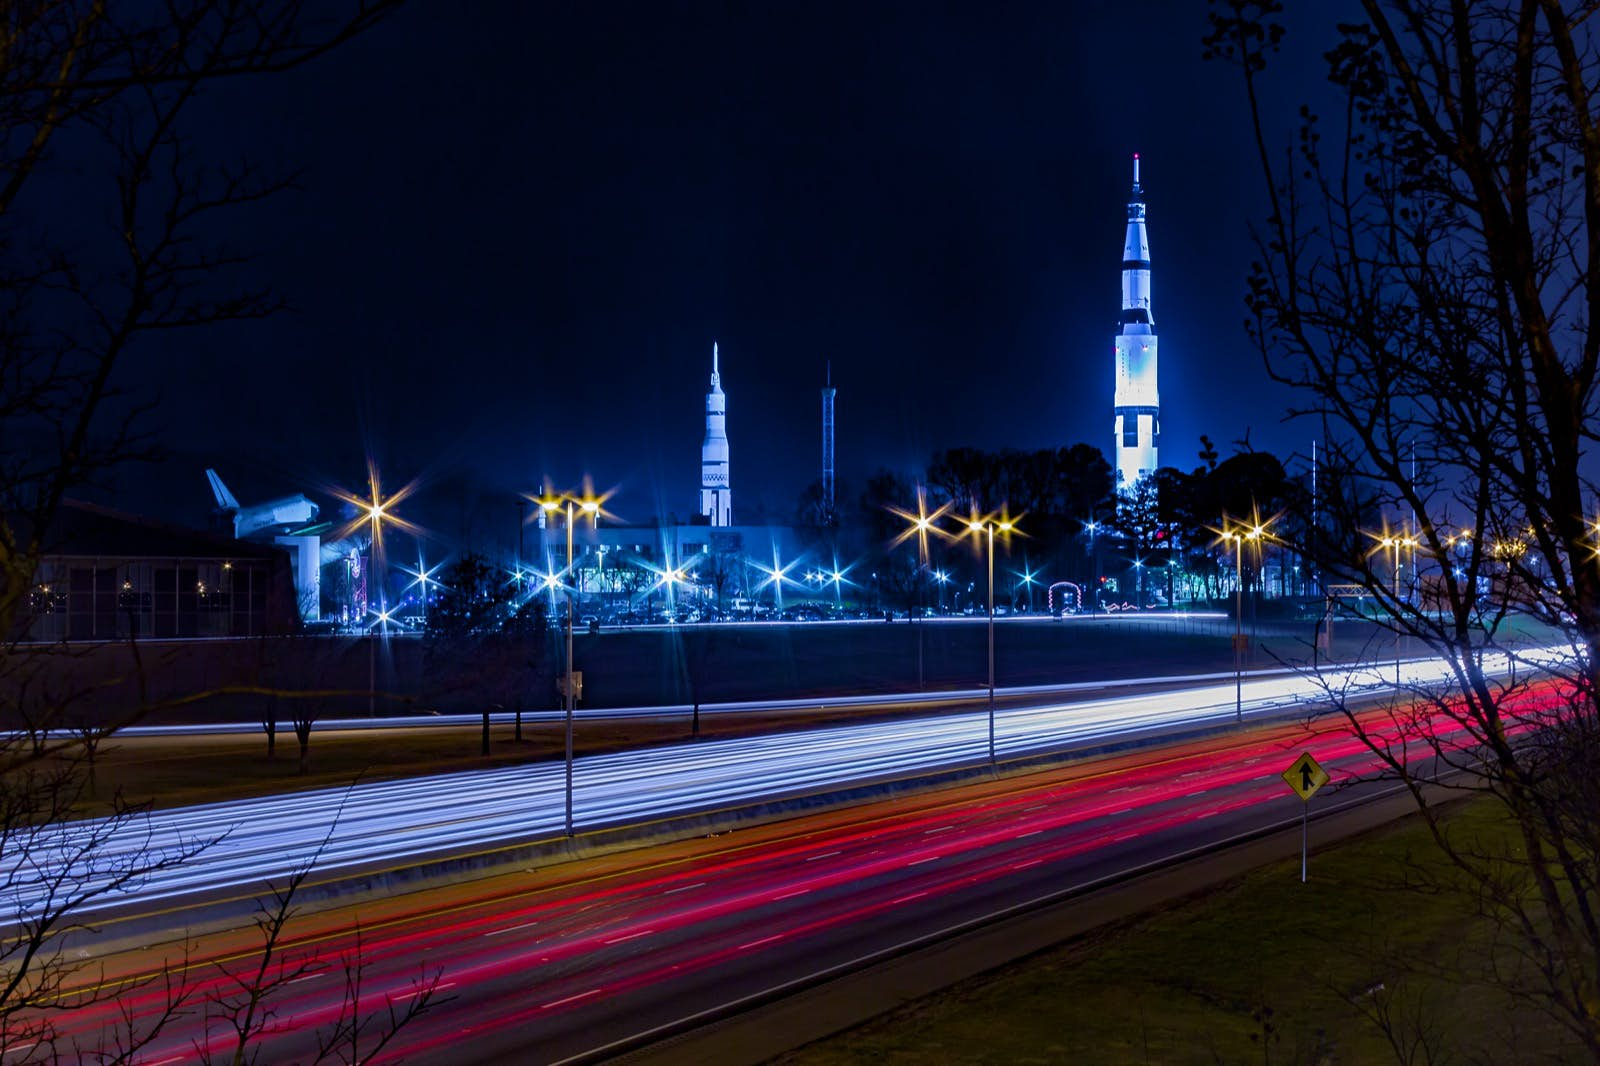 A long exposure shot of US Space and Rocket Center Huntsville, AL with highway traffic. There are parallel streaks of red and white from the car lights in the foreground and the white, needle-like shuttles are visible in the background; Apollo anniversary experiences